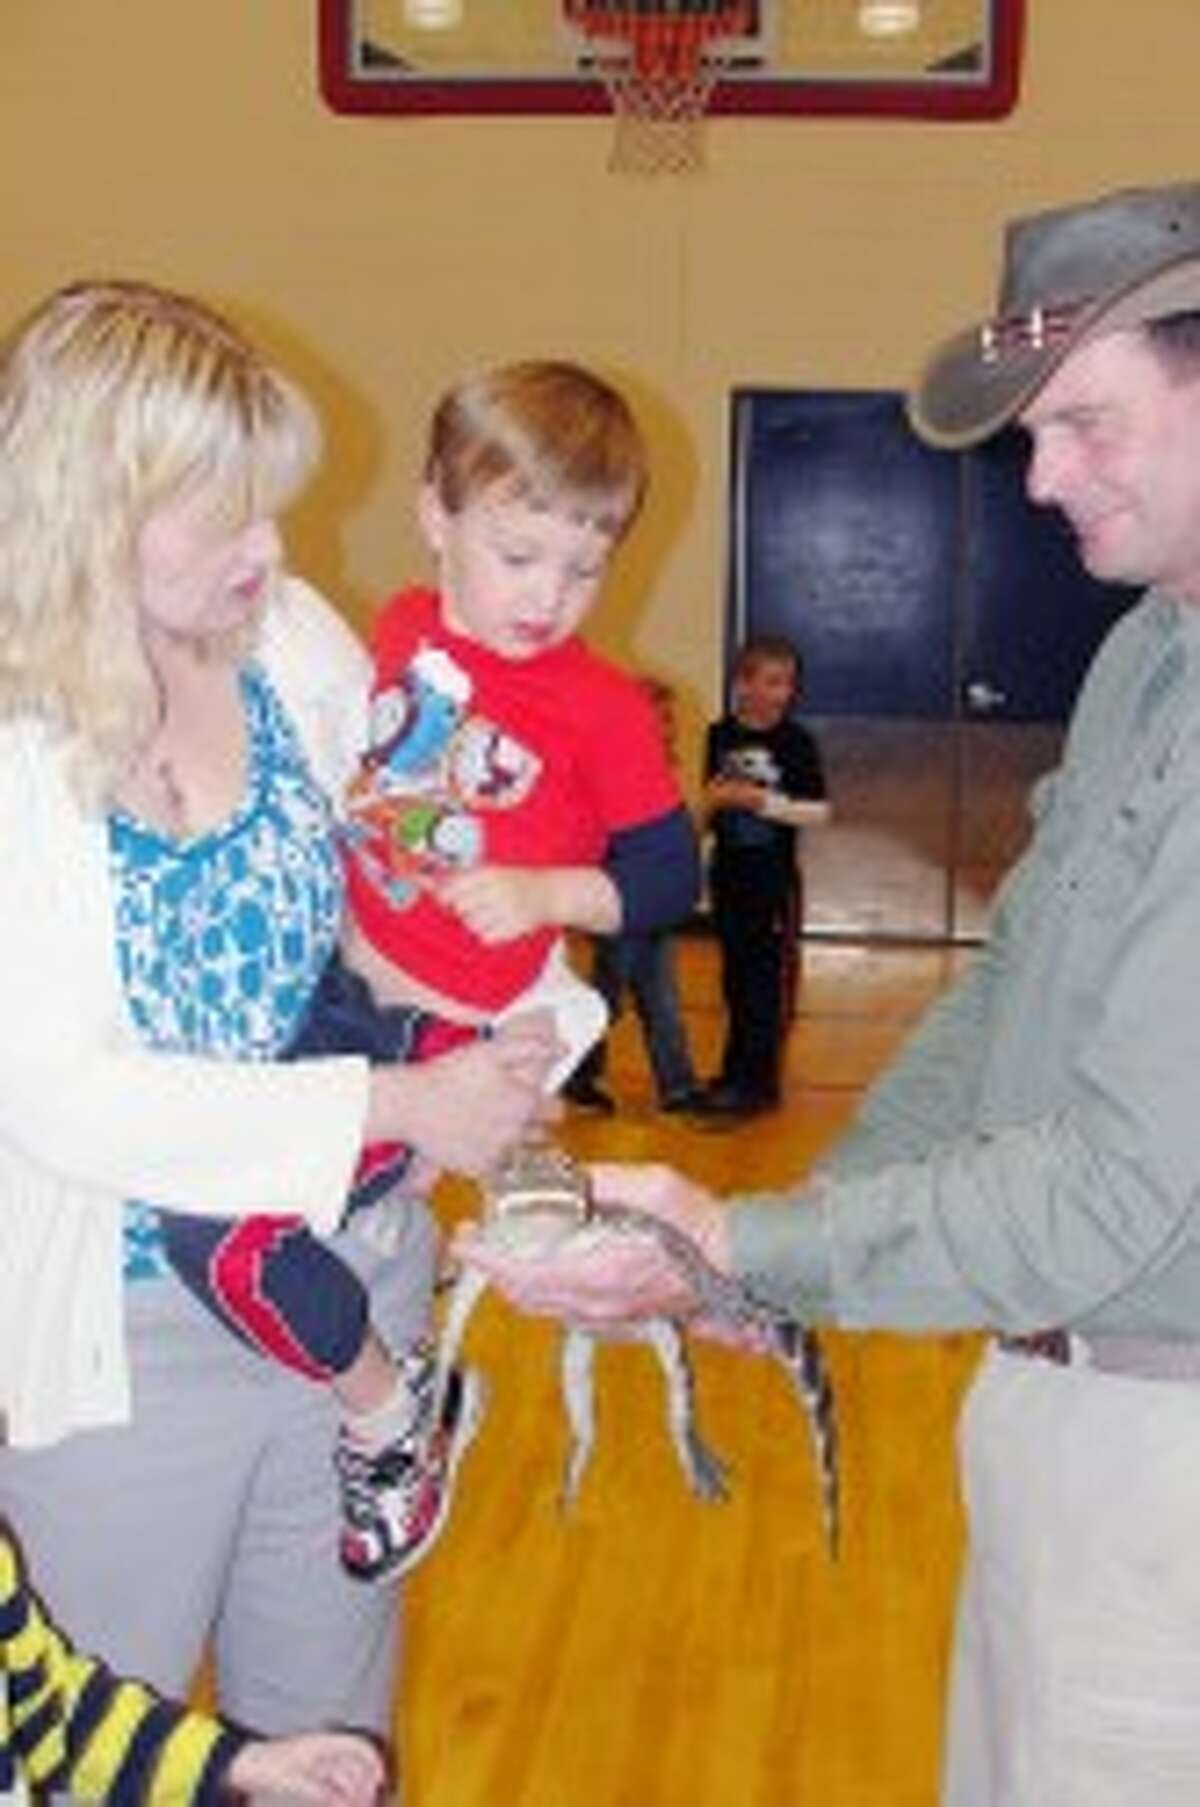 CREATURE ENCOUNTERS: Julie Hanson and her son, Ethan, get a visit from Oscar. In addition to little crocodiles, there were snakes, birds, and lizards on display. (Courtesy photo)